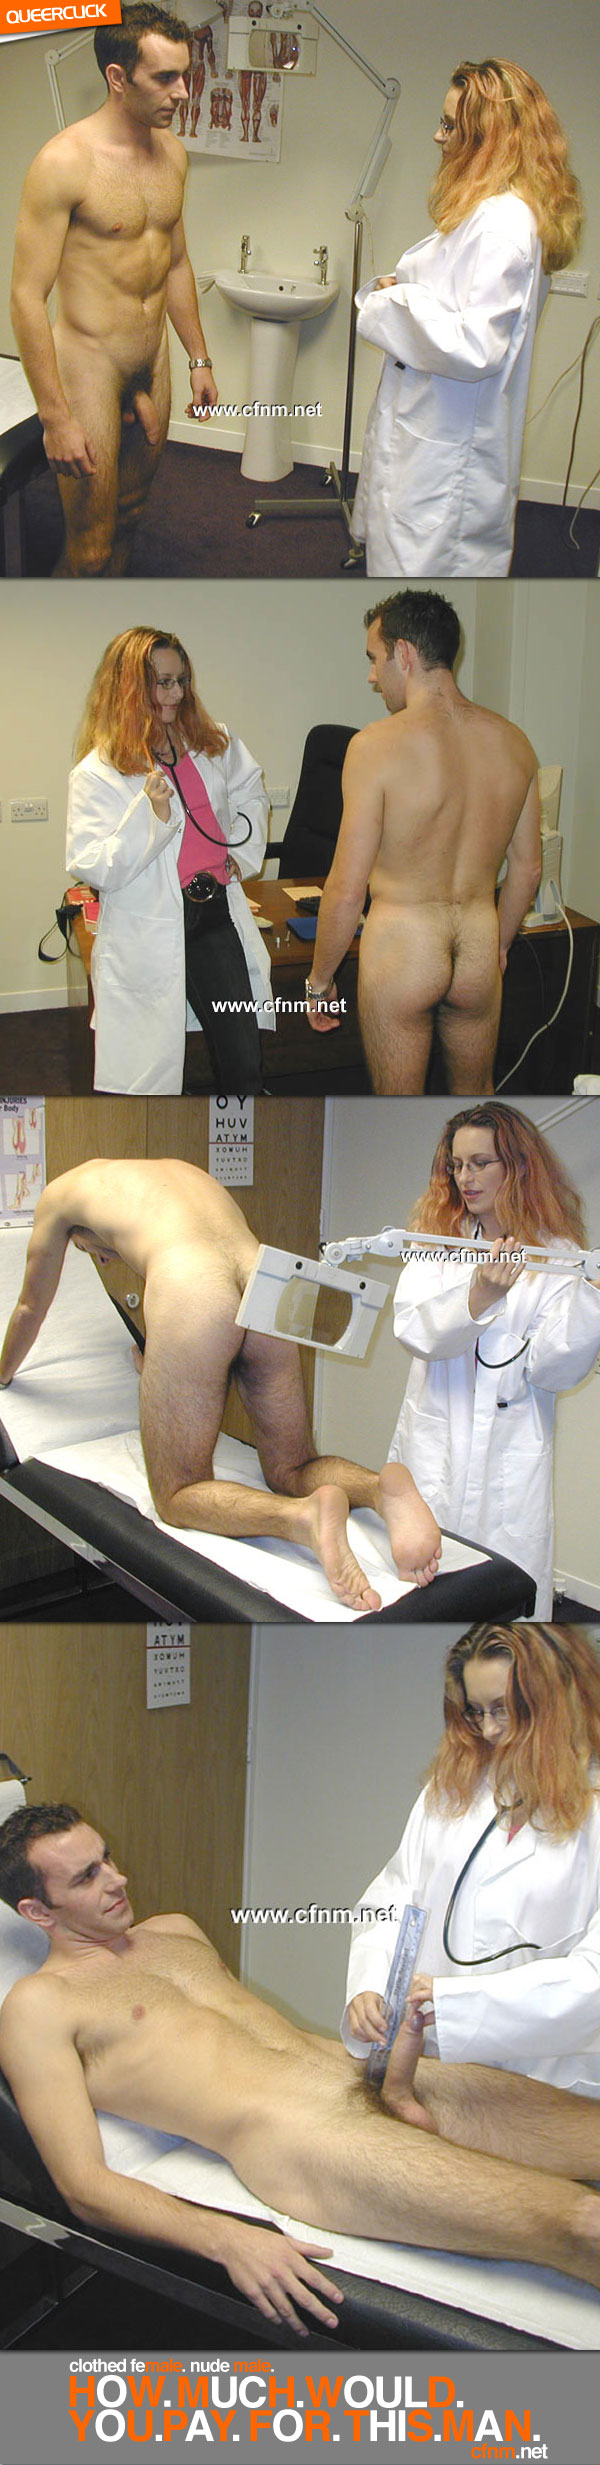 Doctor exam jerk off cum shot and college